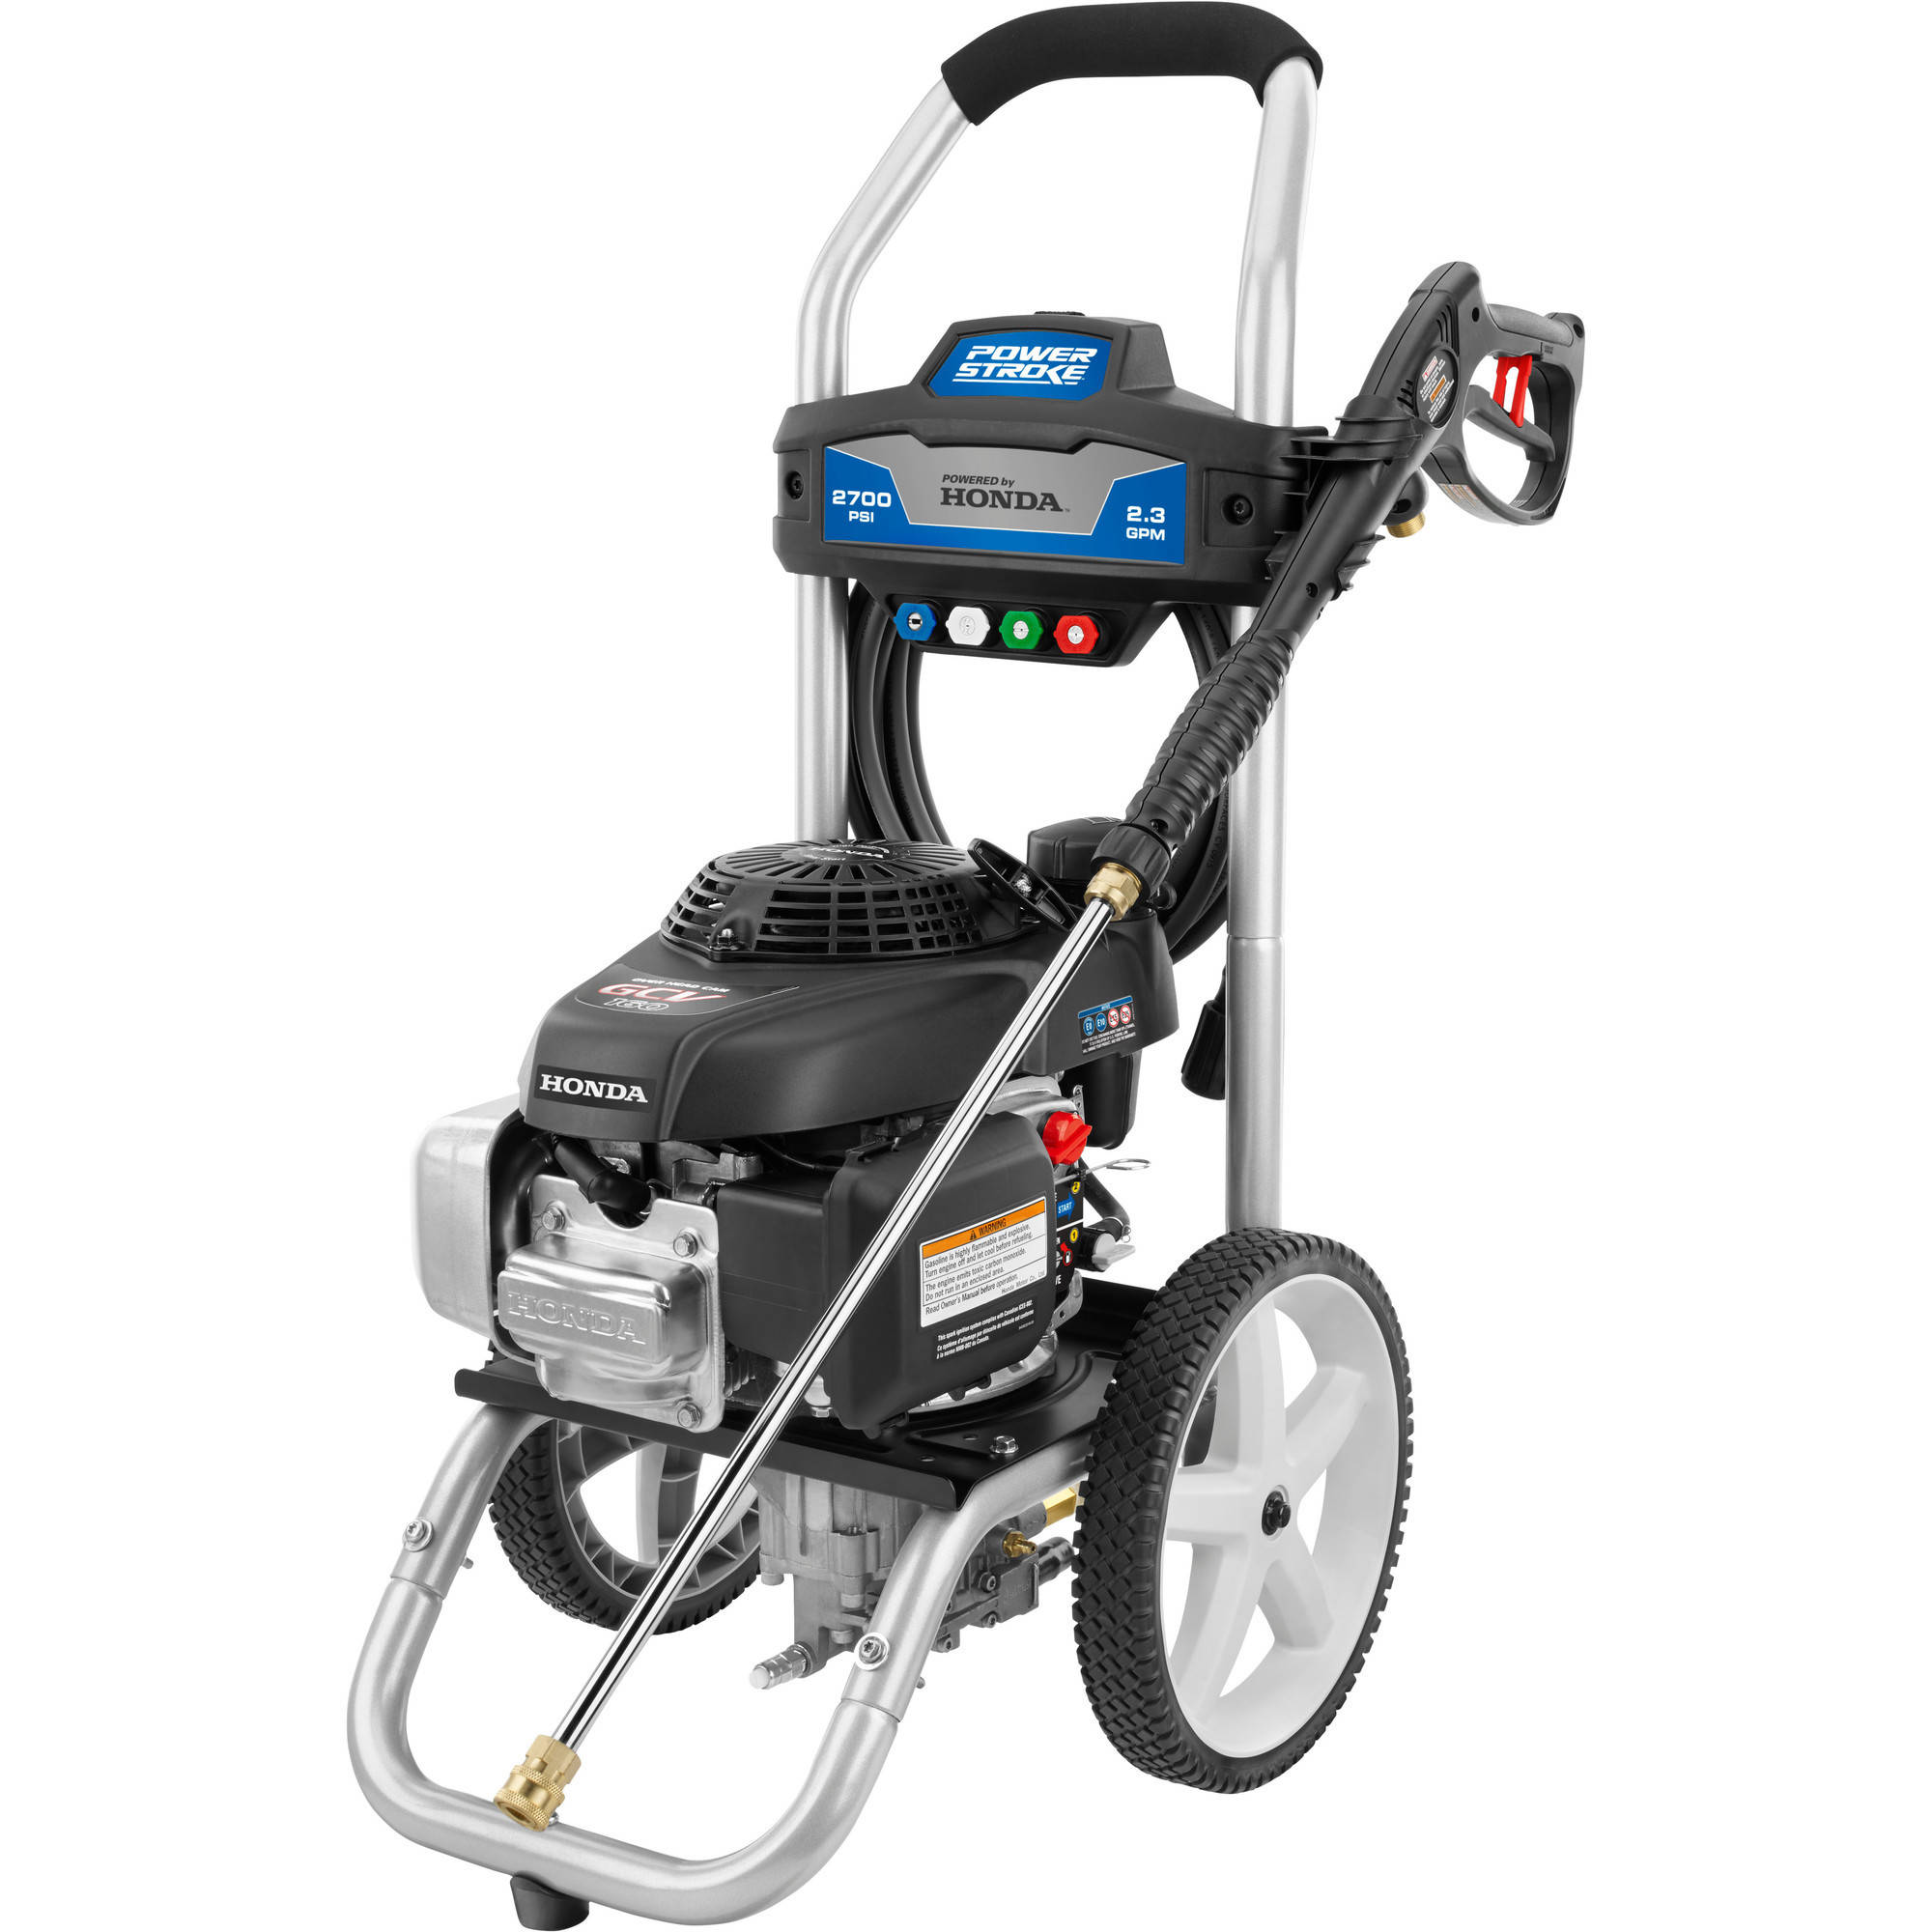 powerstroke pressure washer powerstroke 2700 psi gas pressure washer walmart 10648